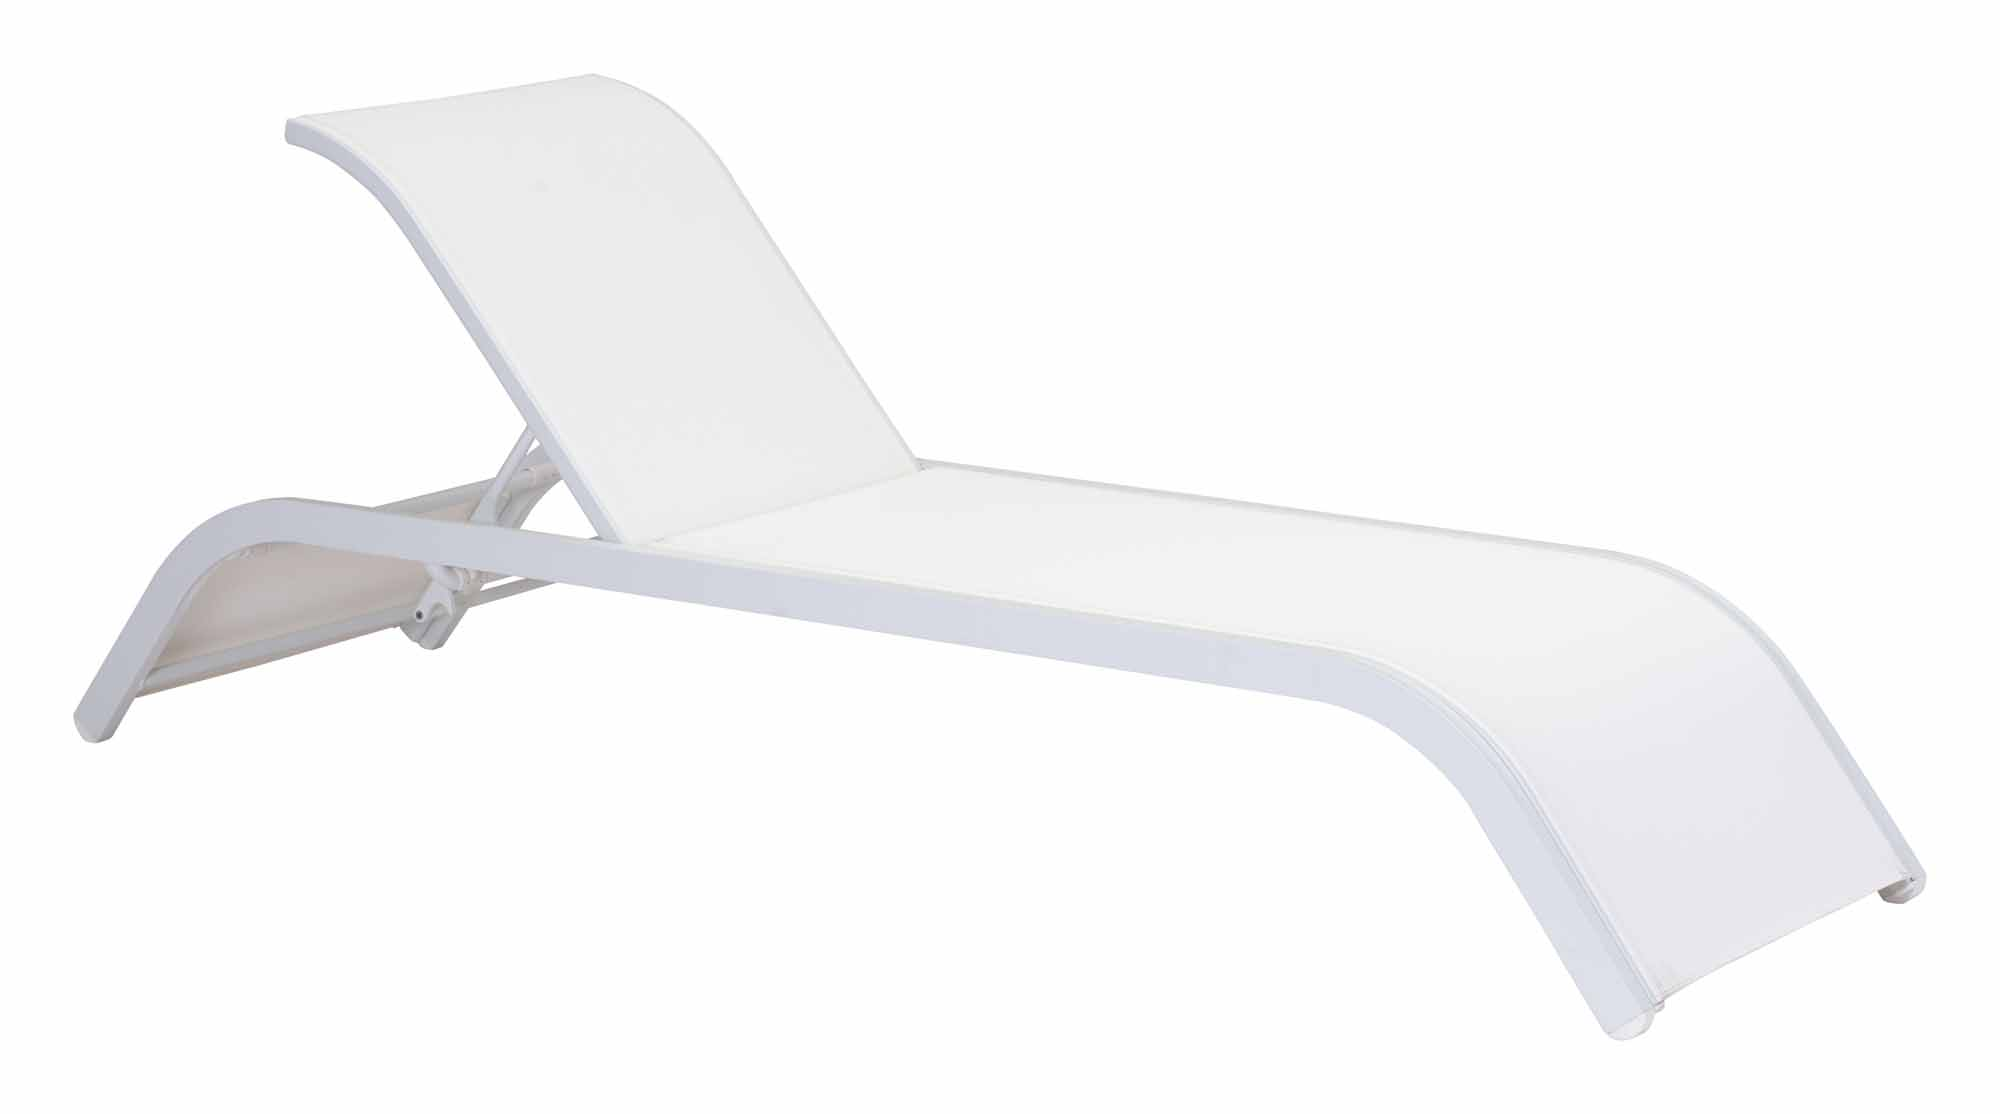 Sun beach chaise lounge white by zuo modern for Beach chaise lounger